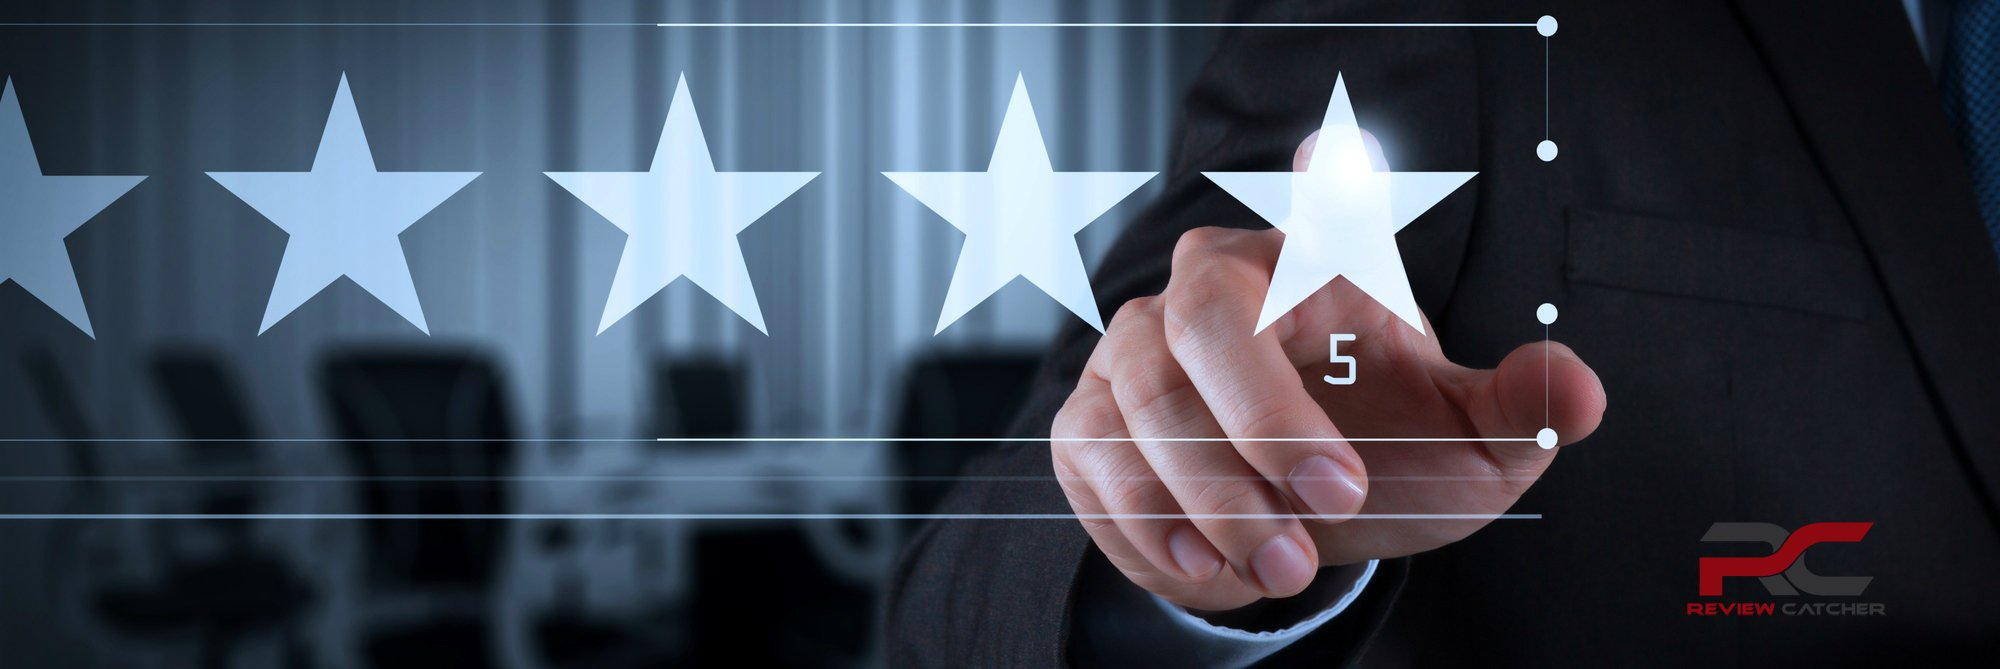 review catcher helps you get more business reviews